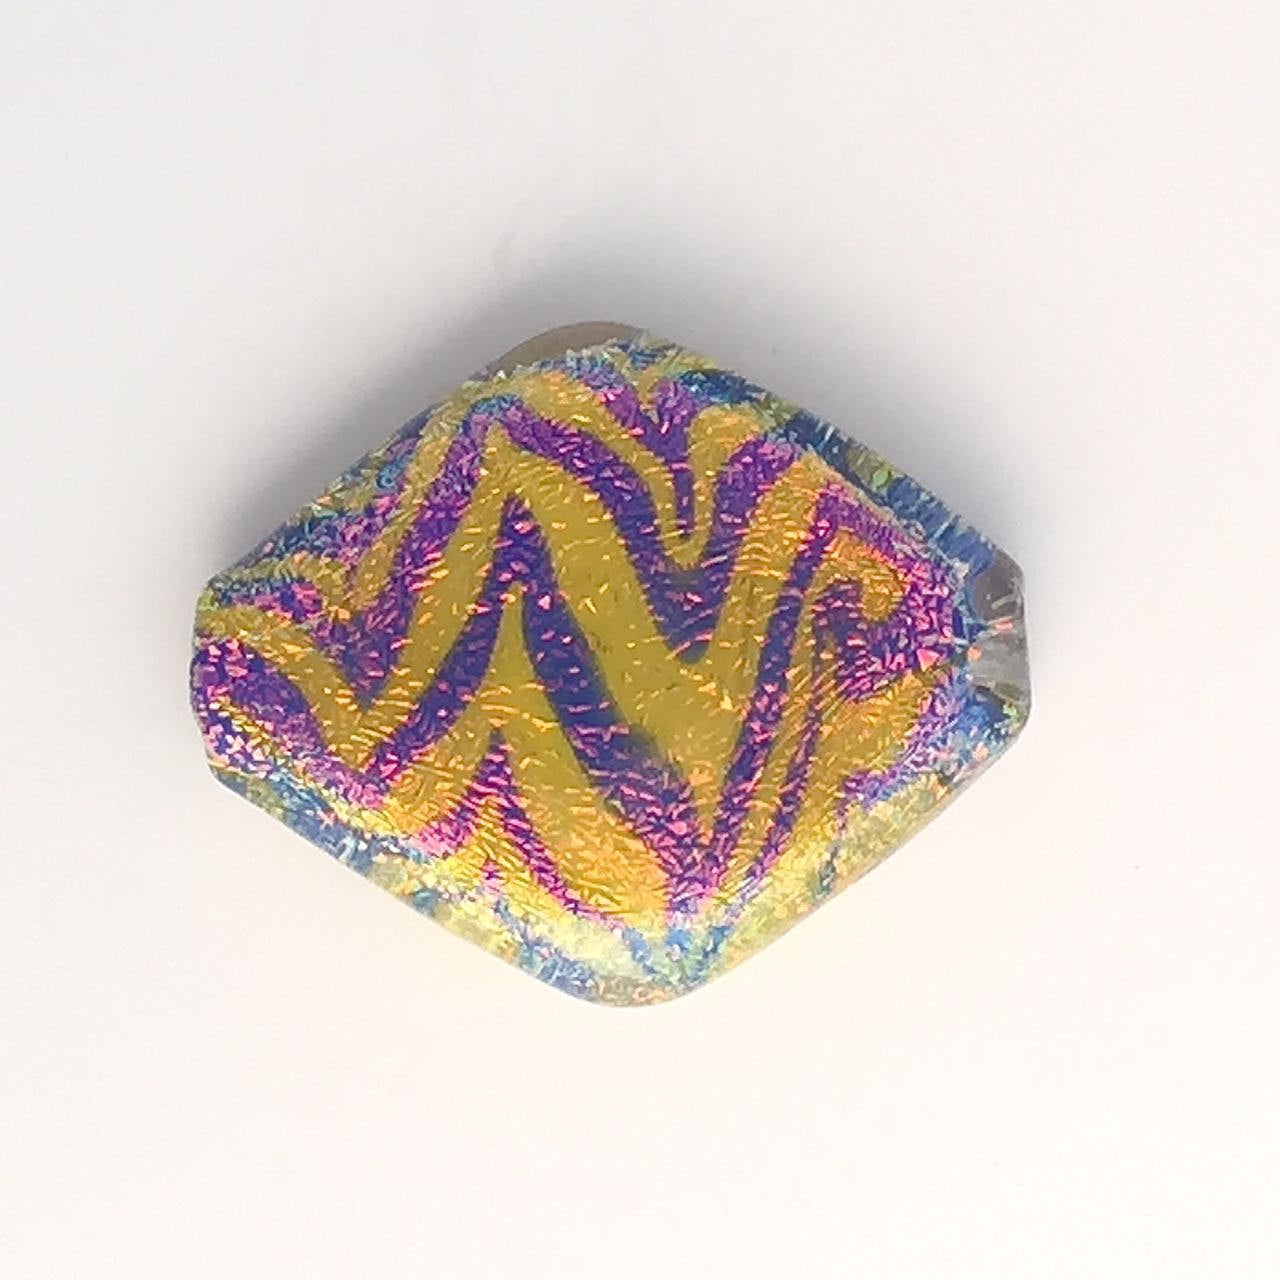 Dichroic Glass Bead Artist Original | Supplies